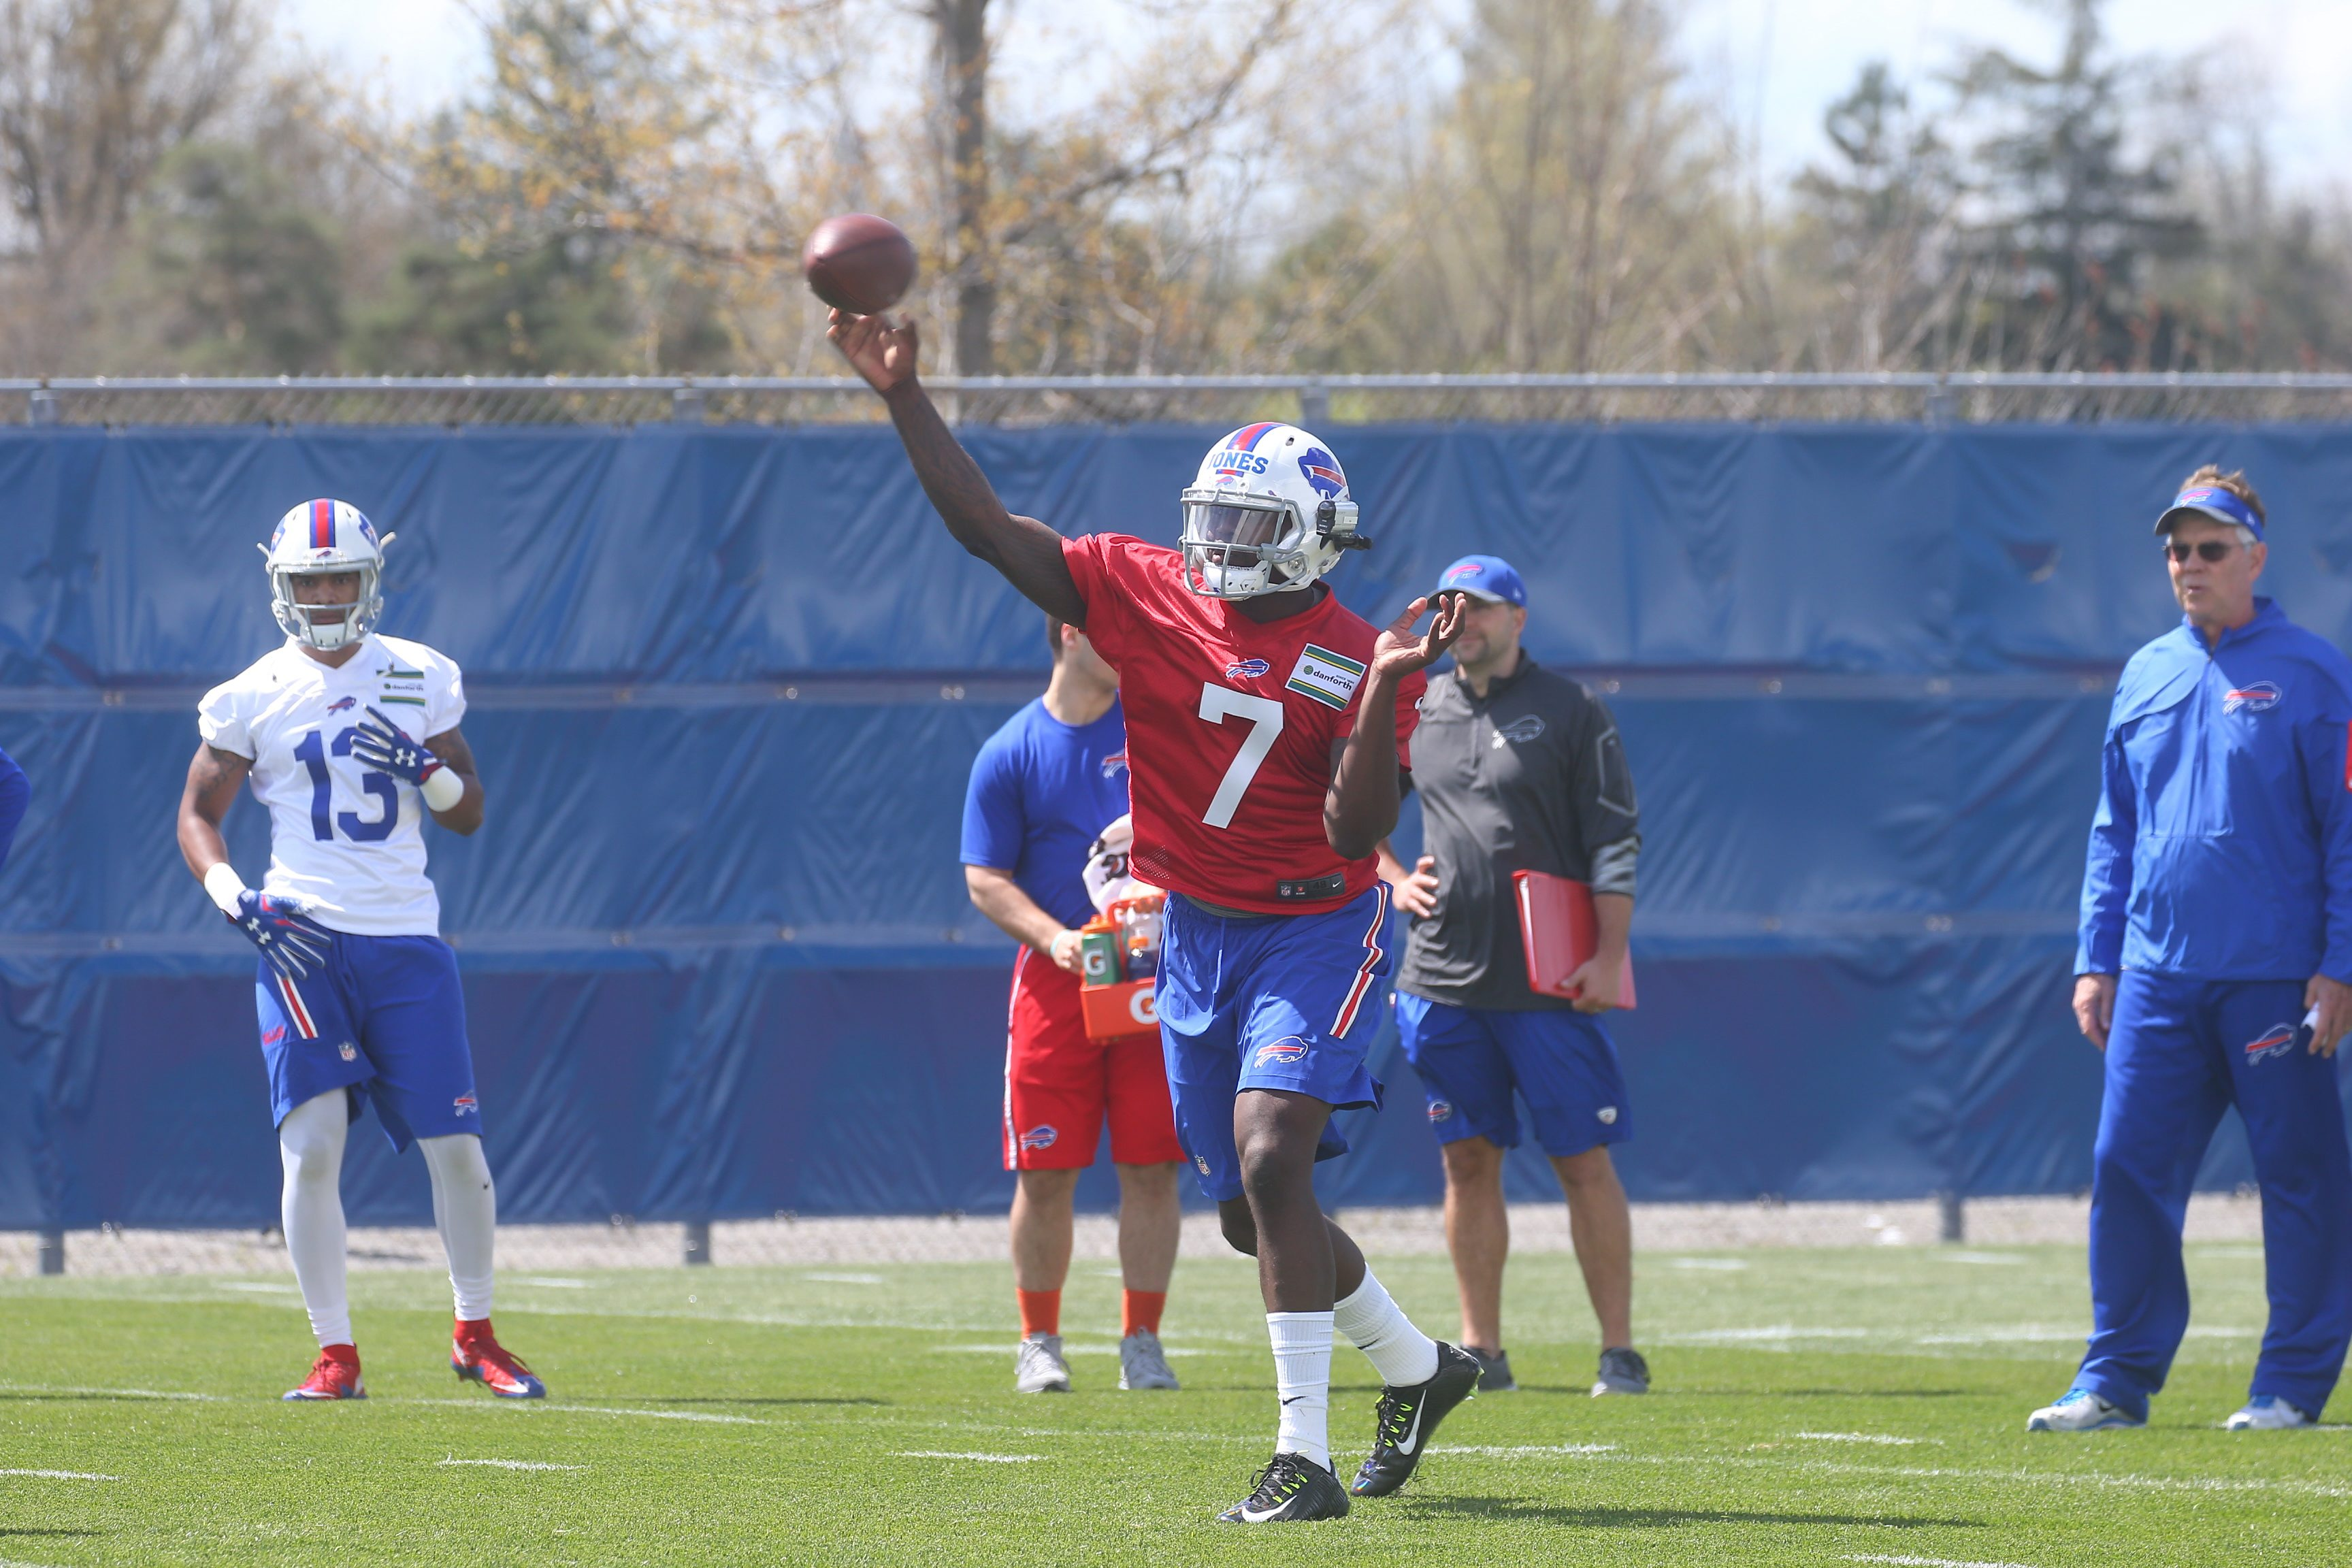 Buffalo Bills QB Cardale Jones (7) throws at Bills rookie camp at the grass practice field, in Orchard Park, N.Y., on Friday May 6, 2016. (John Hickey/Buffalo News)